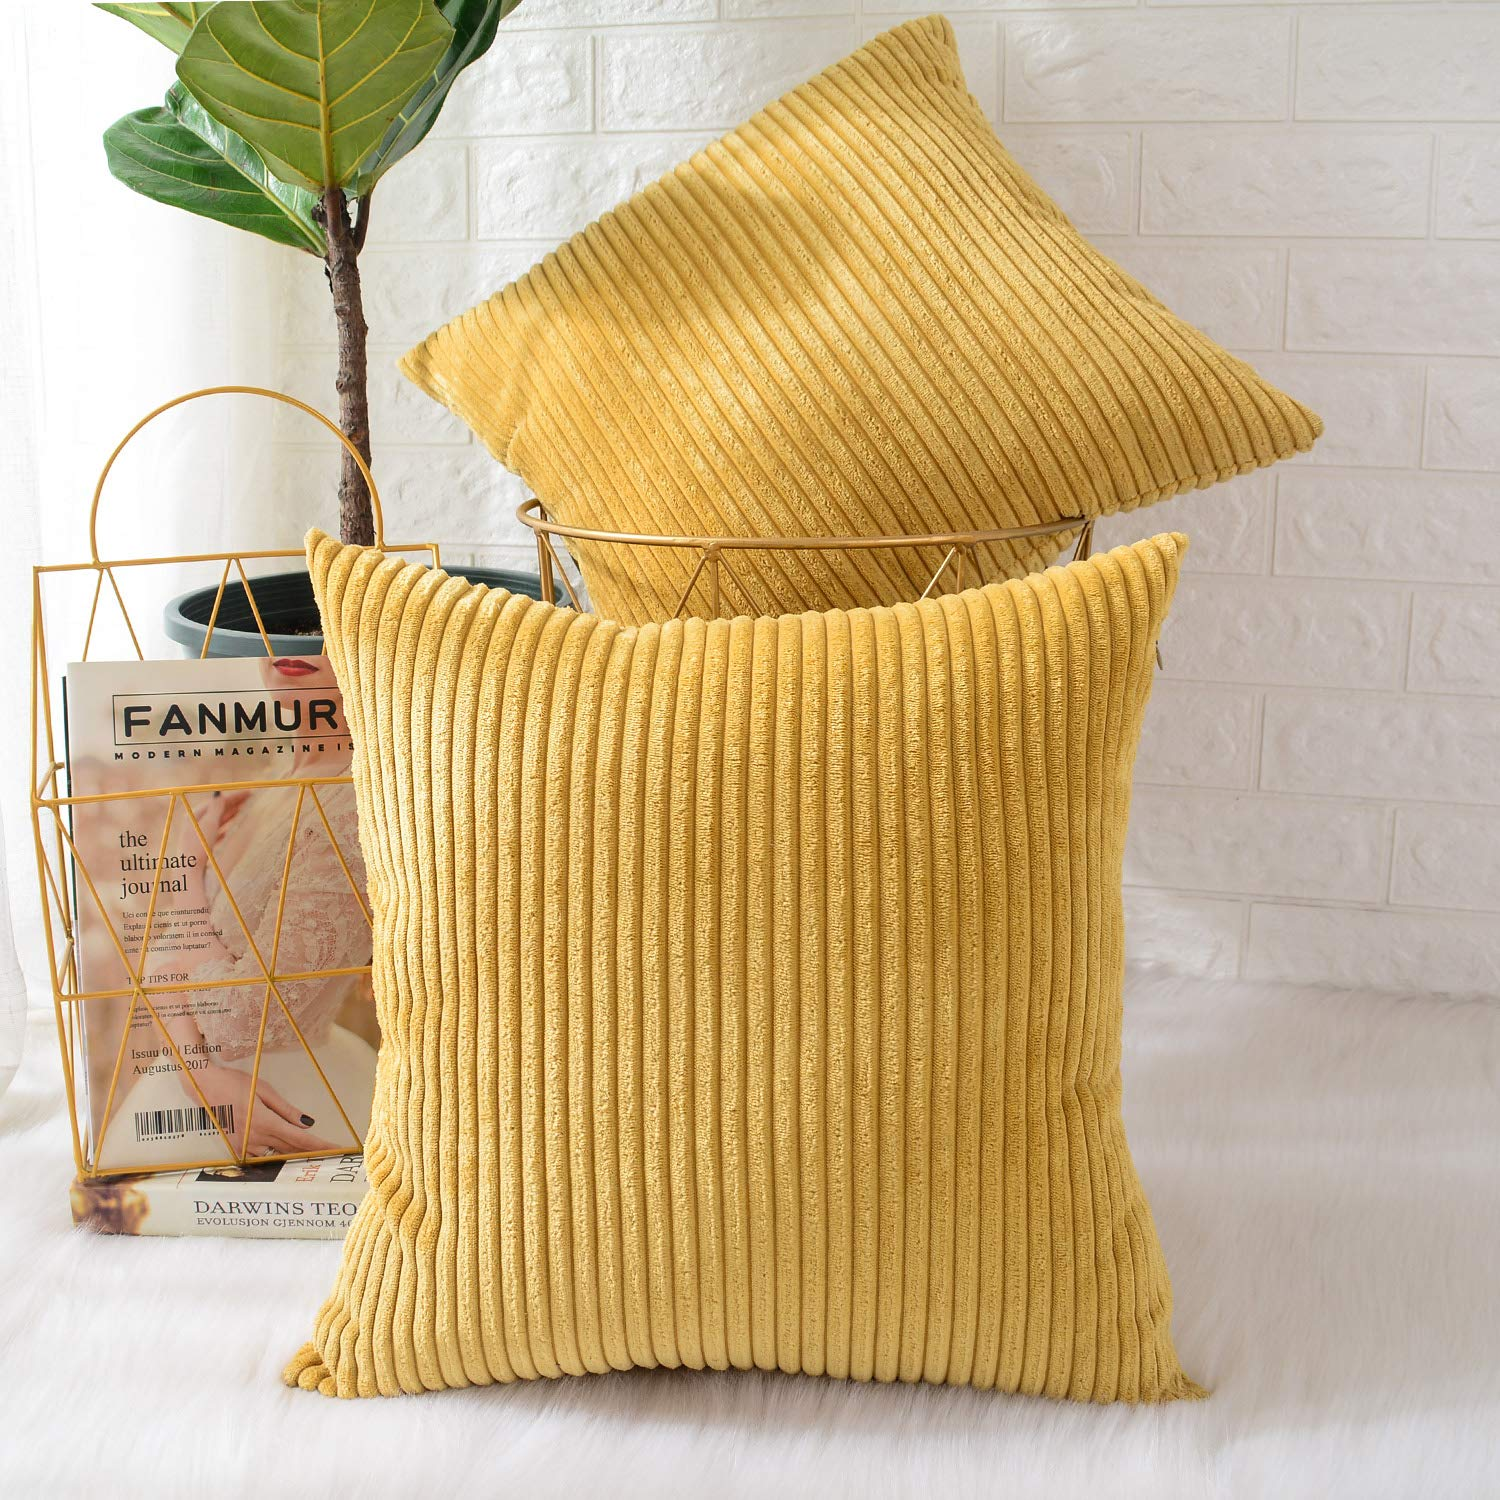 MERNETTE Pack of 2, Corduroy Soft Decorative Square Throw Pillow Cover Cushion Covers Pillowcase, Home Decor Decorations for Sofa Couch Bed Chair 18x18 Inch/45x45 cm (Striped Grass Yellow)